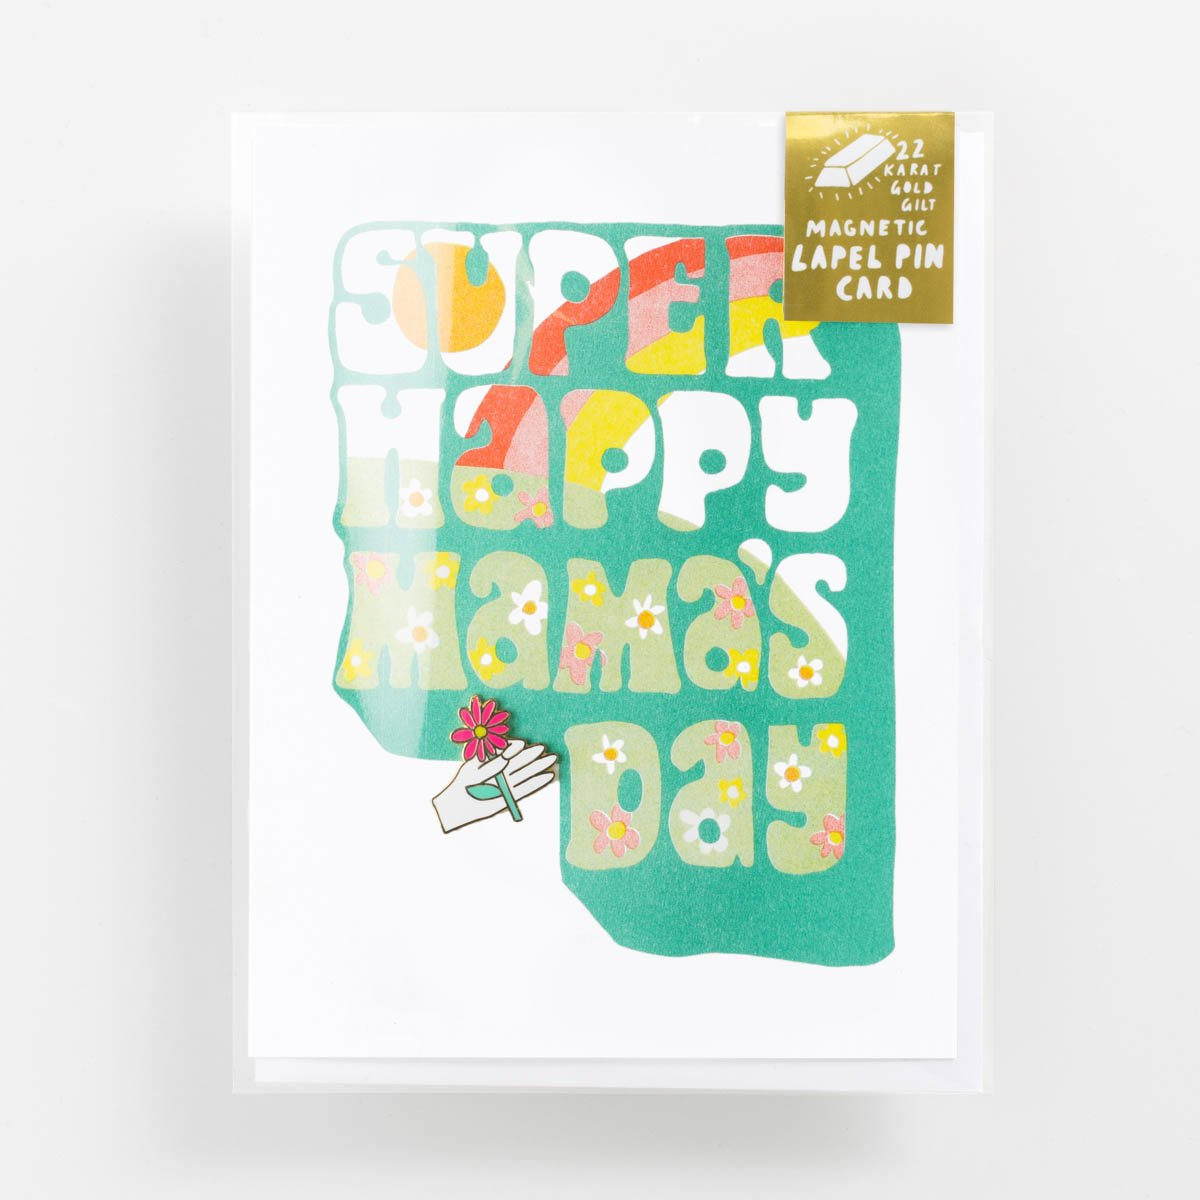 Super Happy Mamas Day - Lapel Pin Card